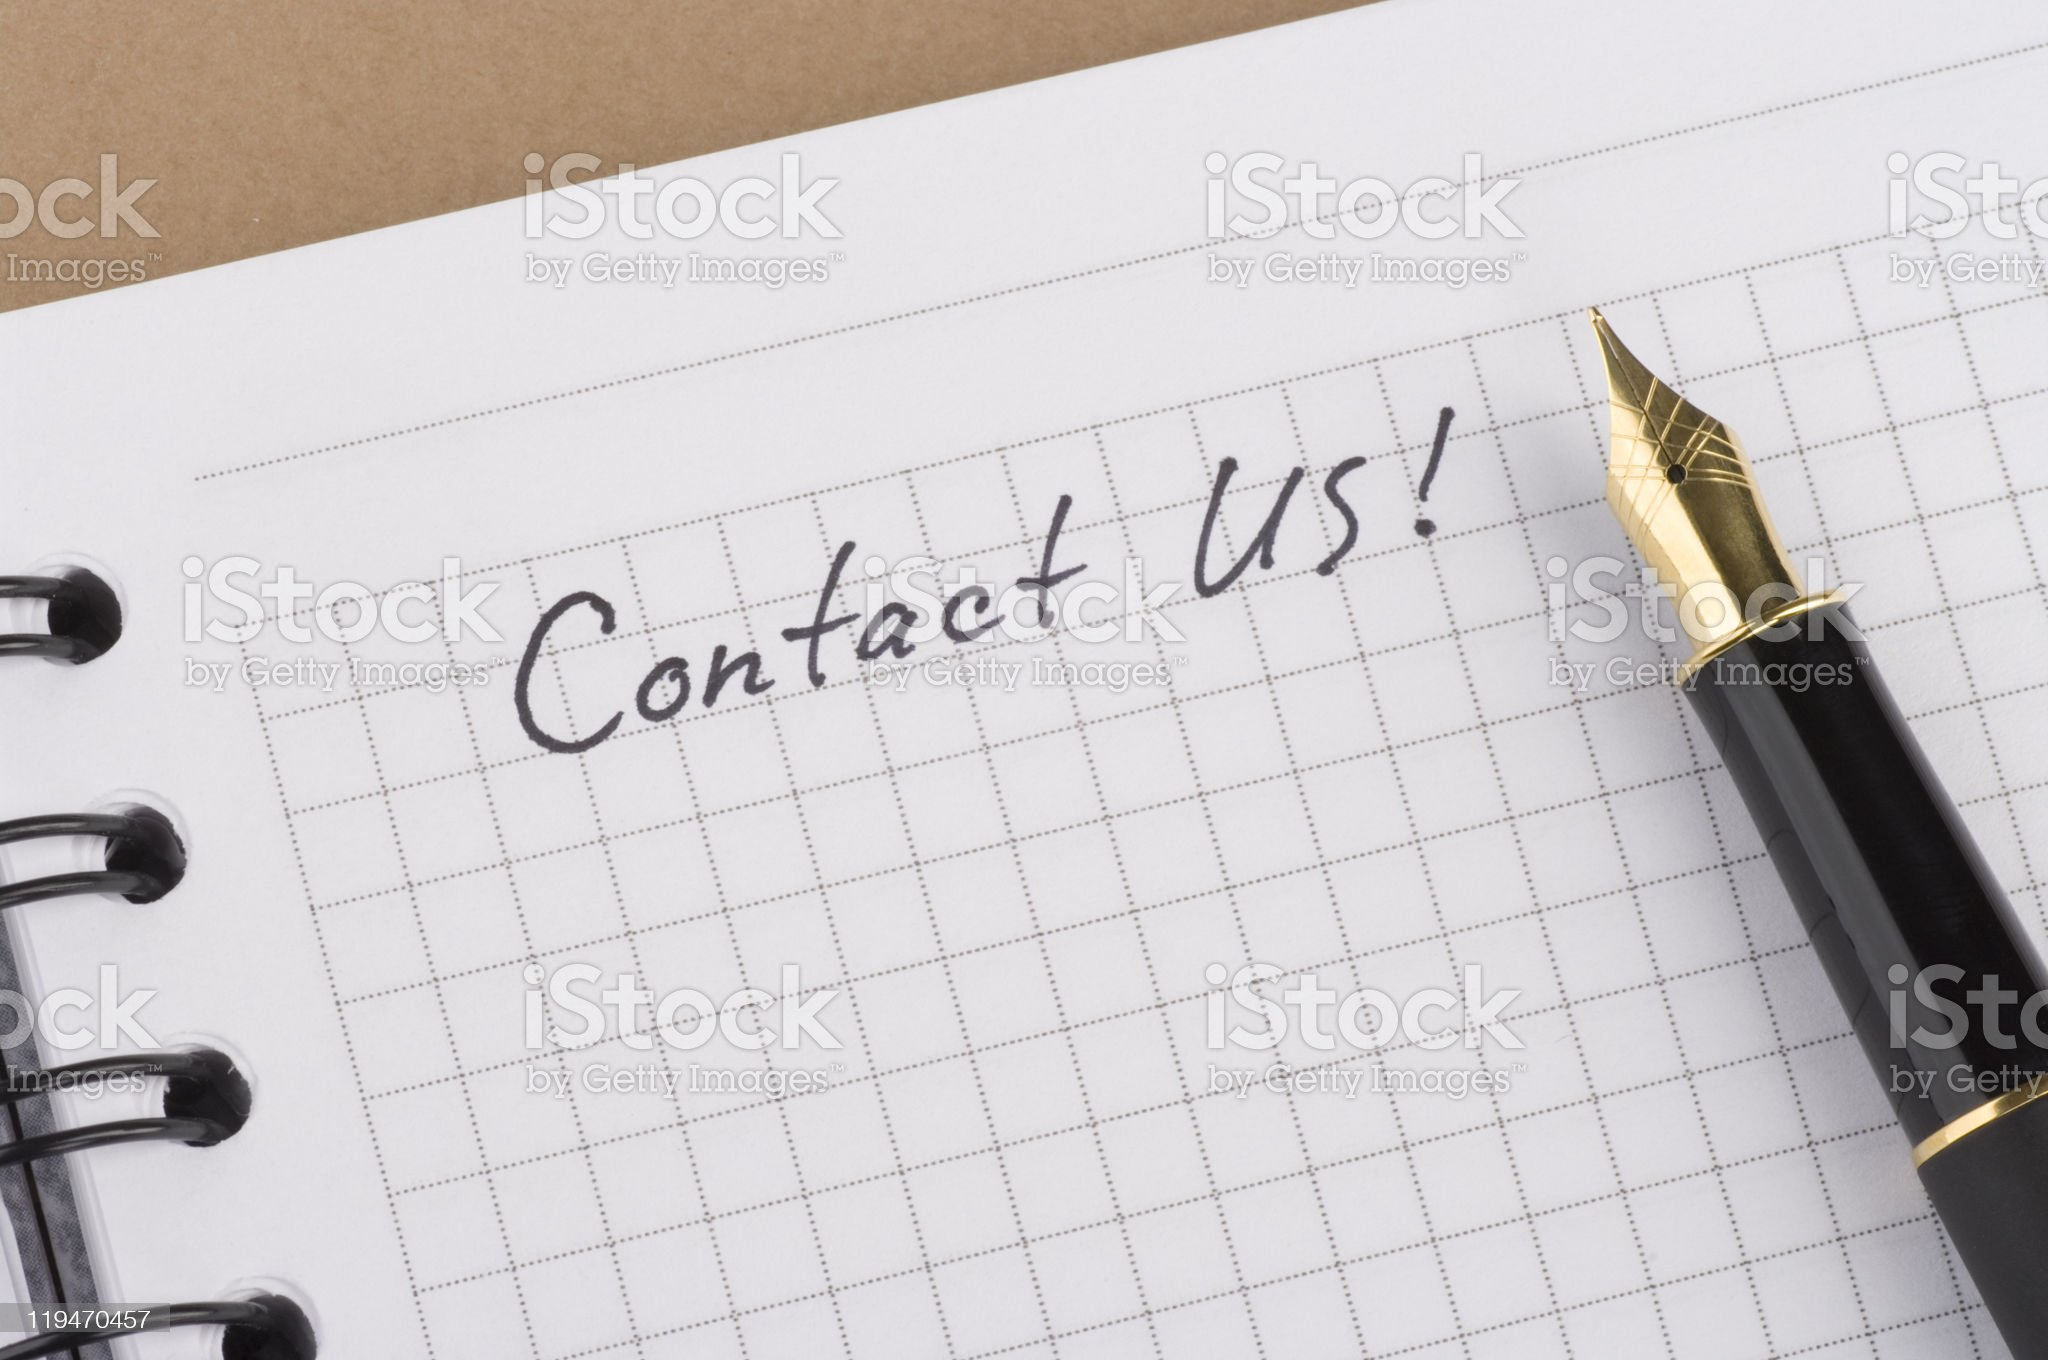 Inscription Contact us with gold pen royalty-free stock photo